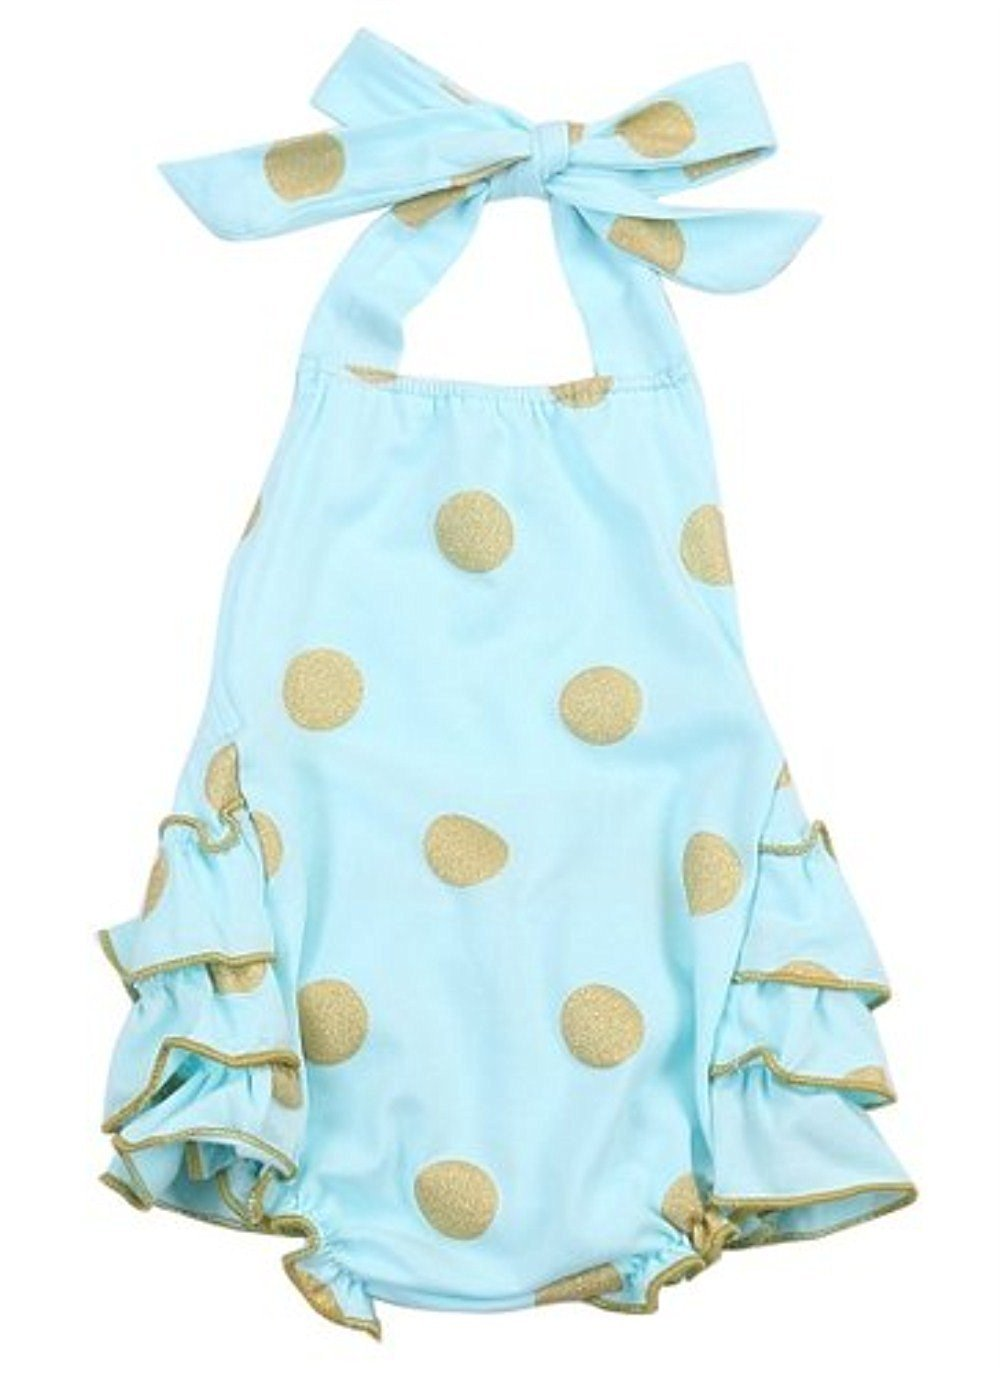 BUYEONLINE Baby Girl Bodysuit Romper Dot Sunsuit Outfits 12-18 month,Sky Blue